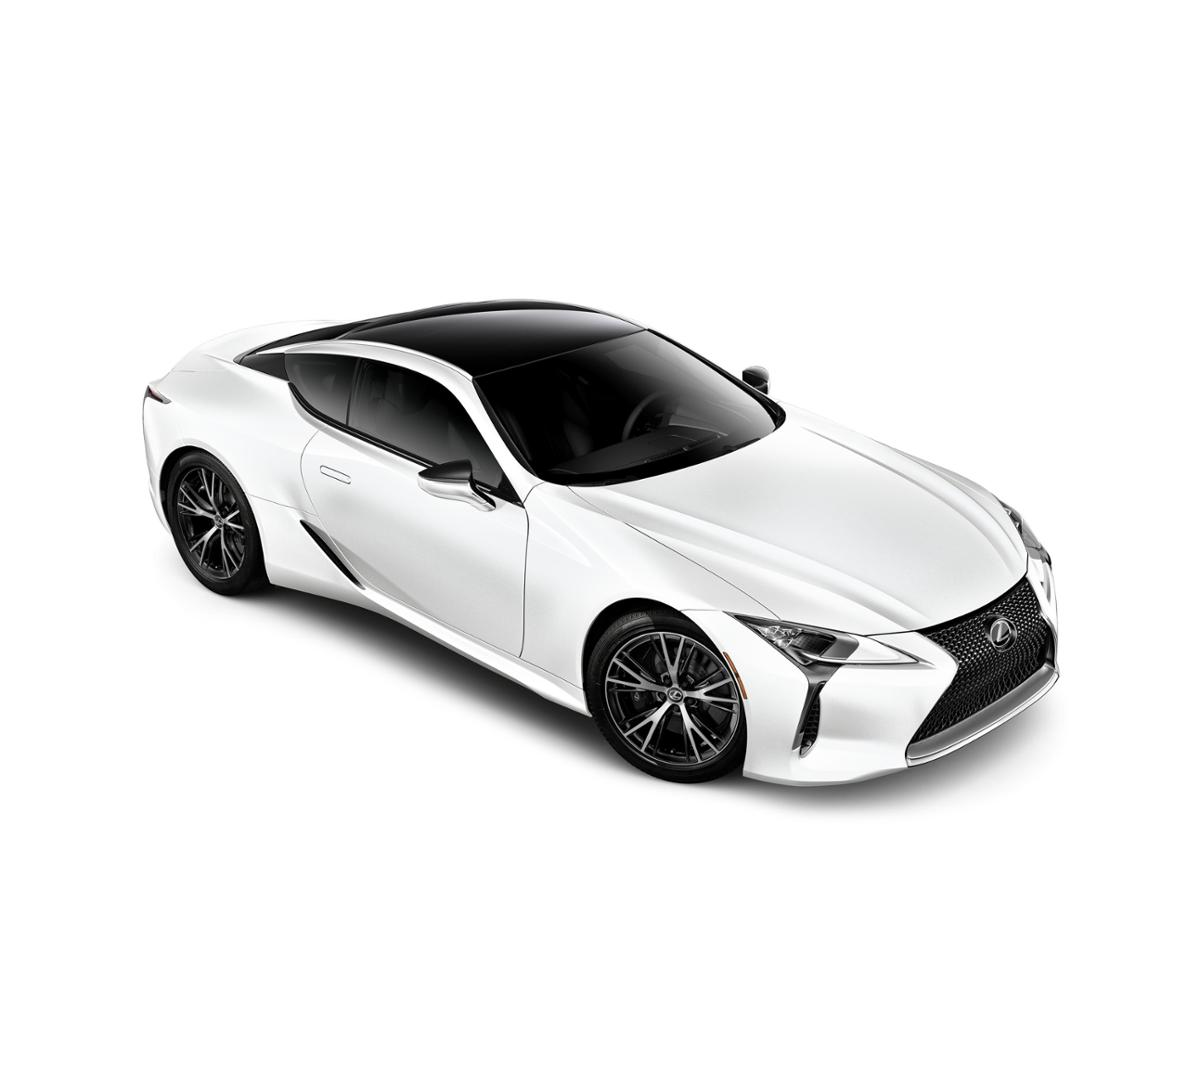 2019 Lexus Lc: 2019 Ultra White LC 500 Lexus LC 500 For Sale In San